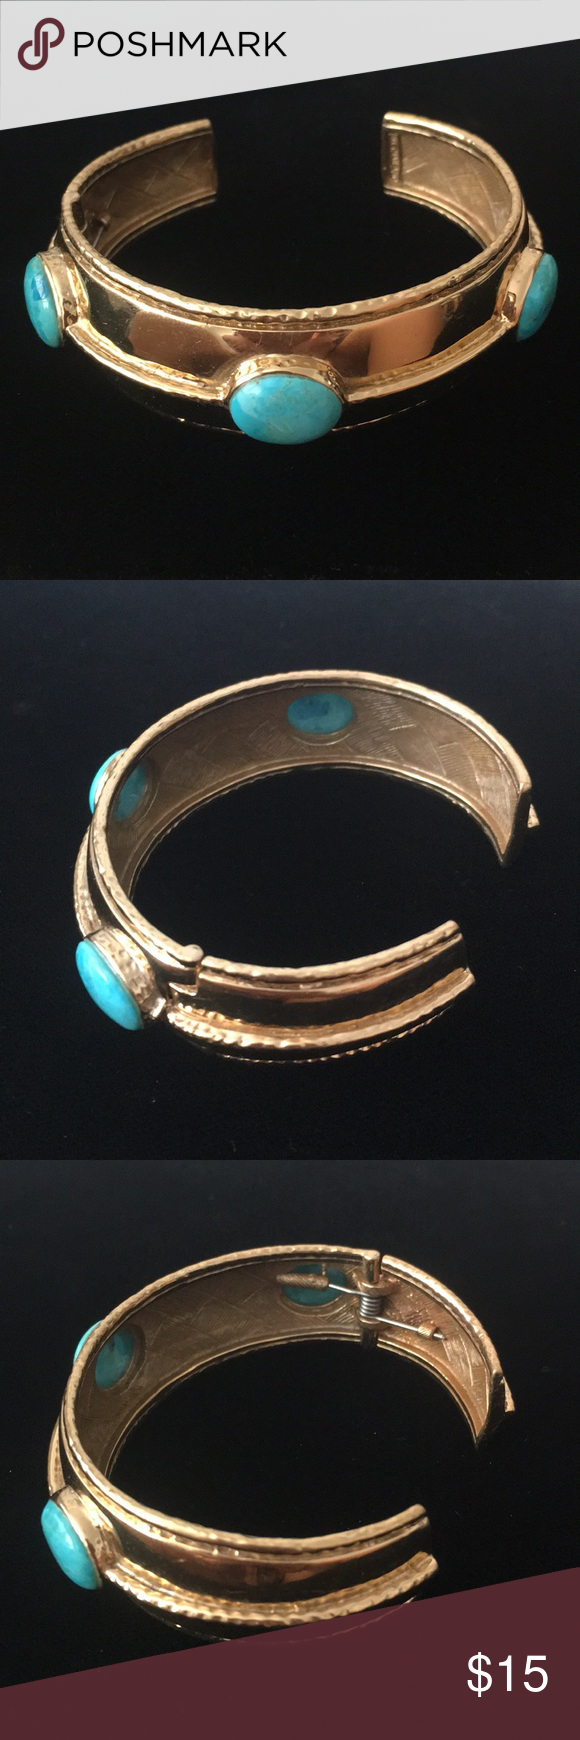 Vintage gold tone with Turquoise stone